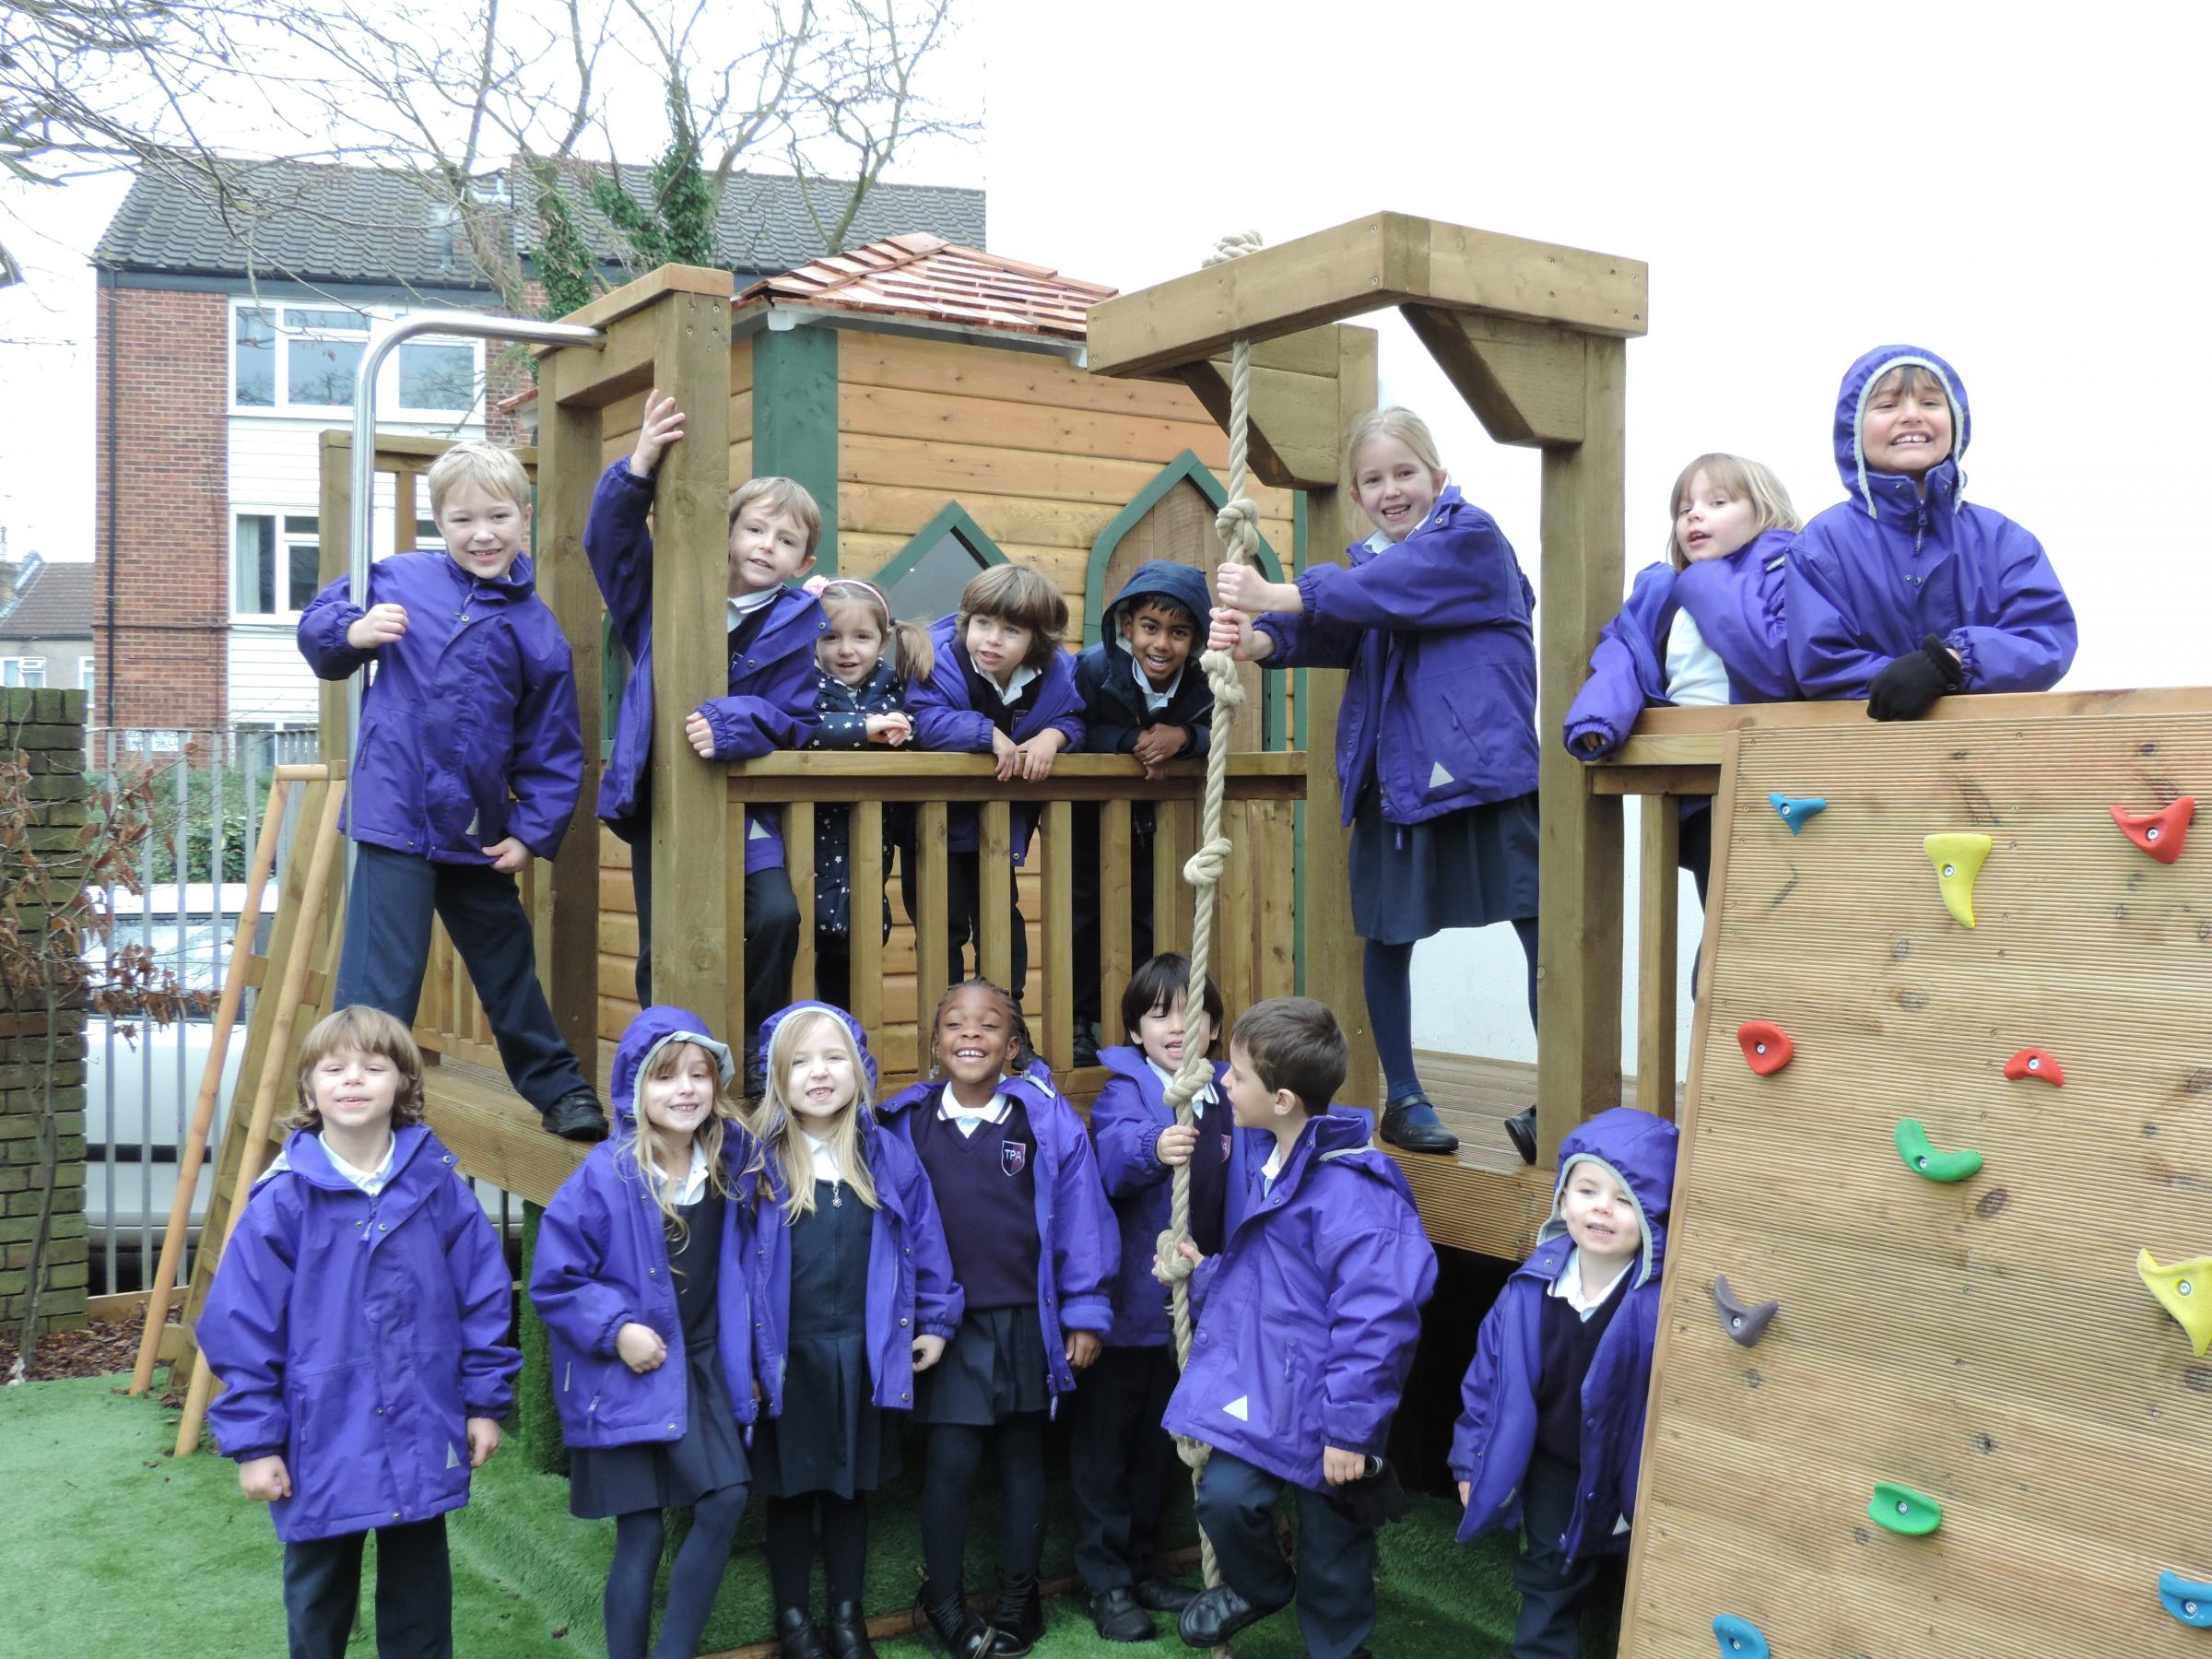 Children at Twickenham Primary Academy are overjoyed with their new adventure playground.